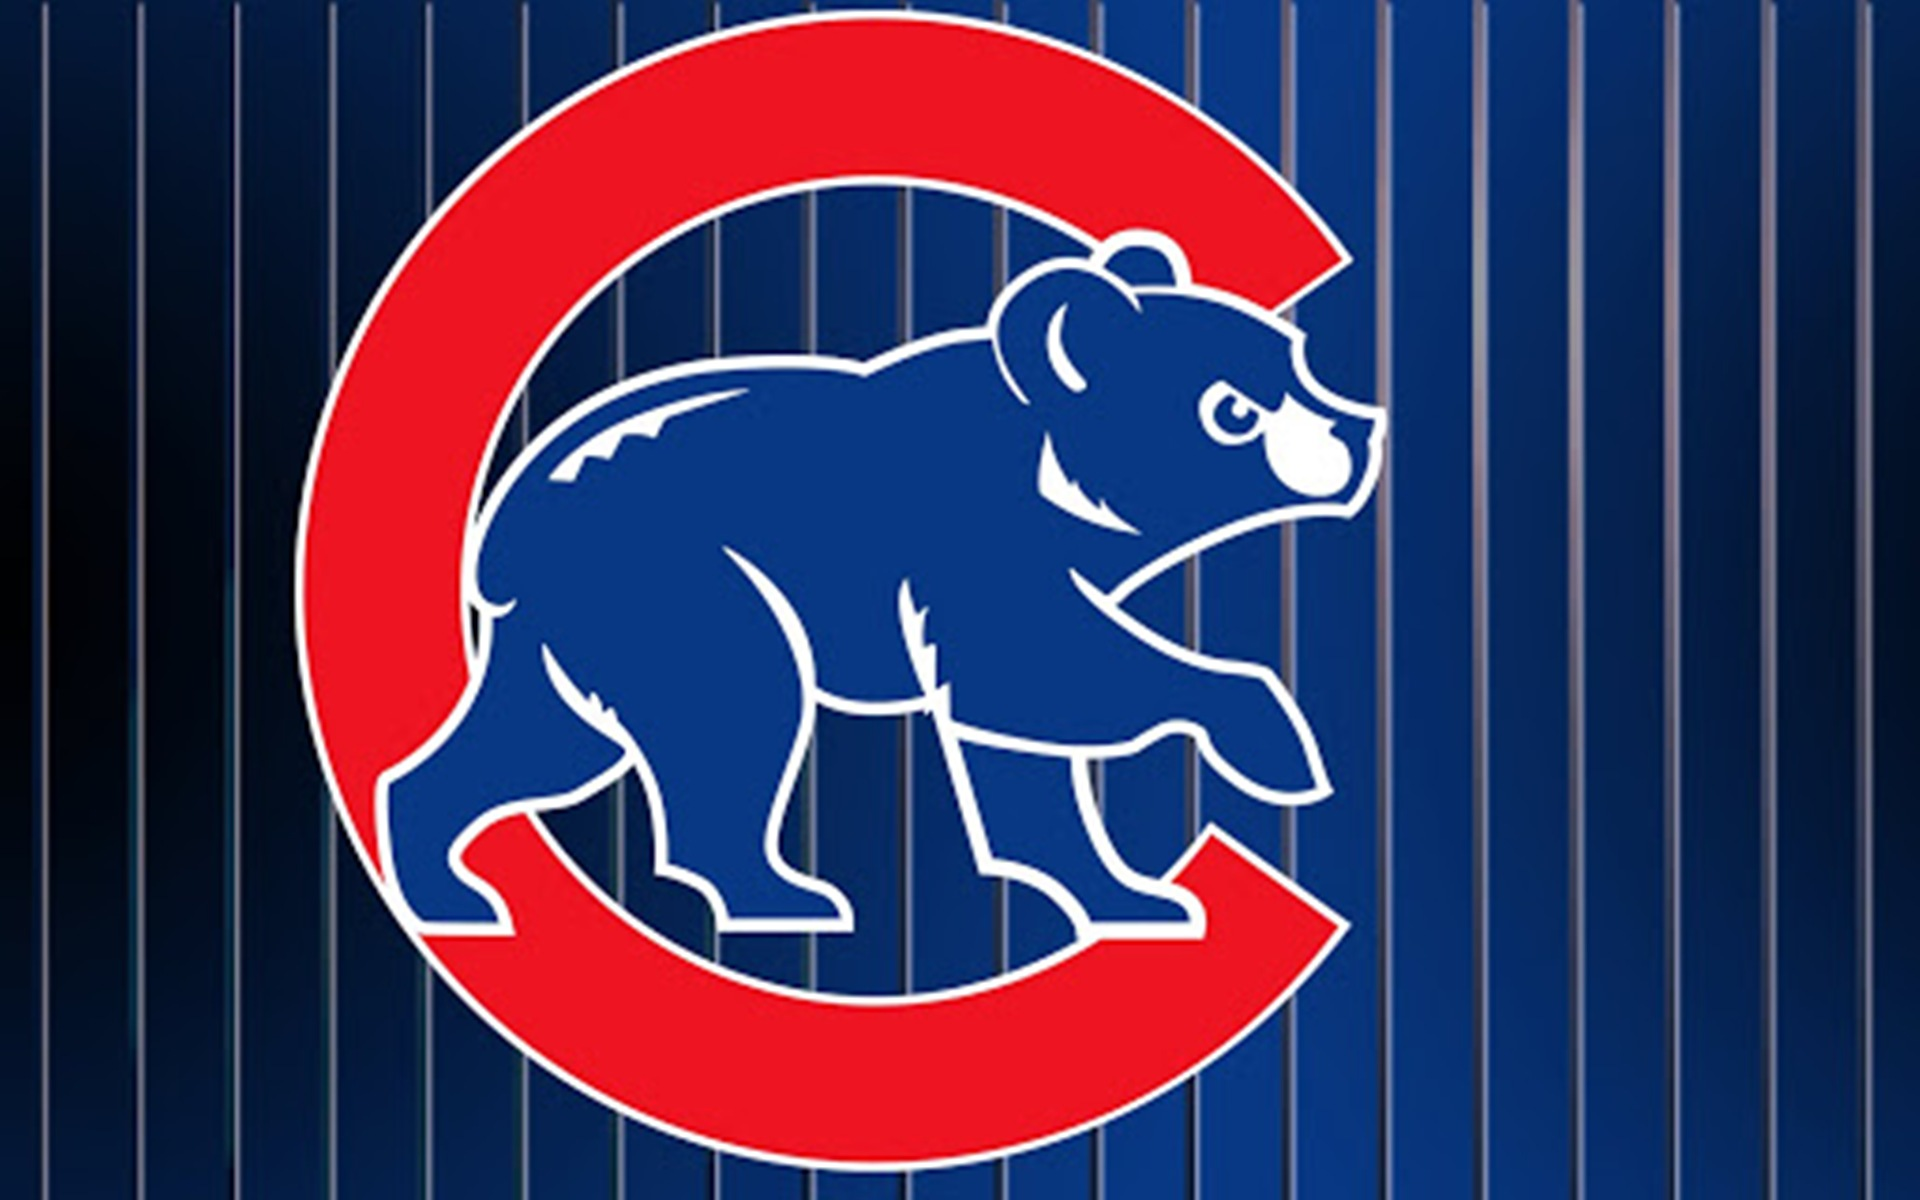 wallpaper details file name chicago cubs wallpaper uploaded by scherma 1920x1200